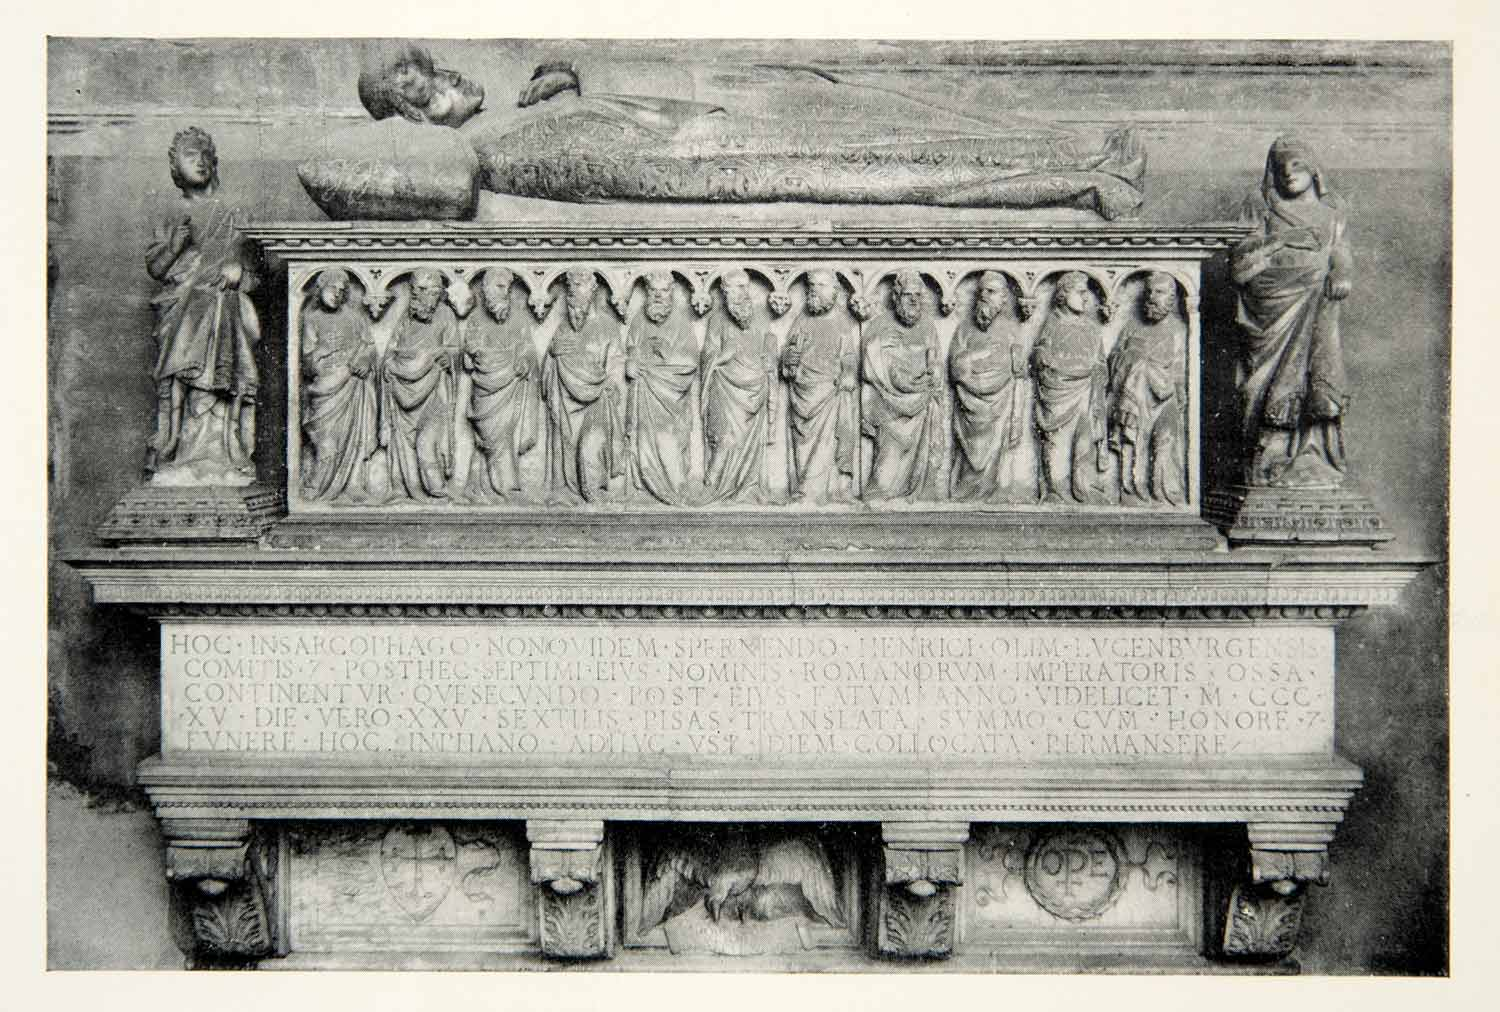 1915 Print Henry Luxemburg Pisa Italy Tomb Sculpture Death Casket Monument XECA7